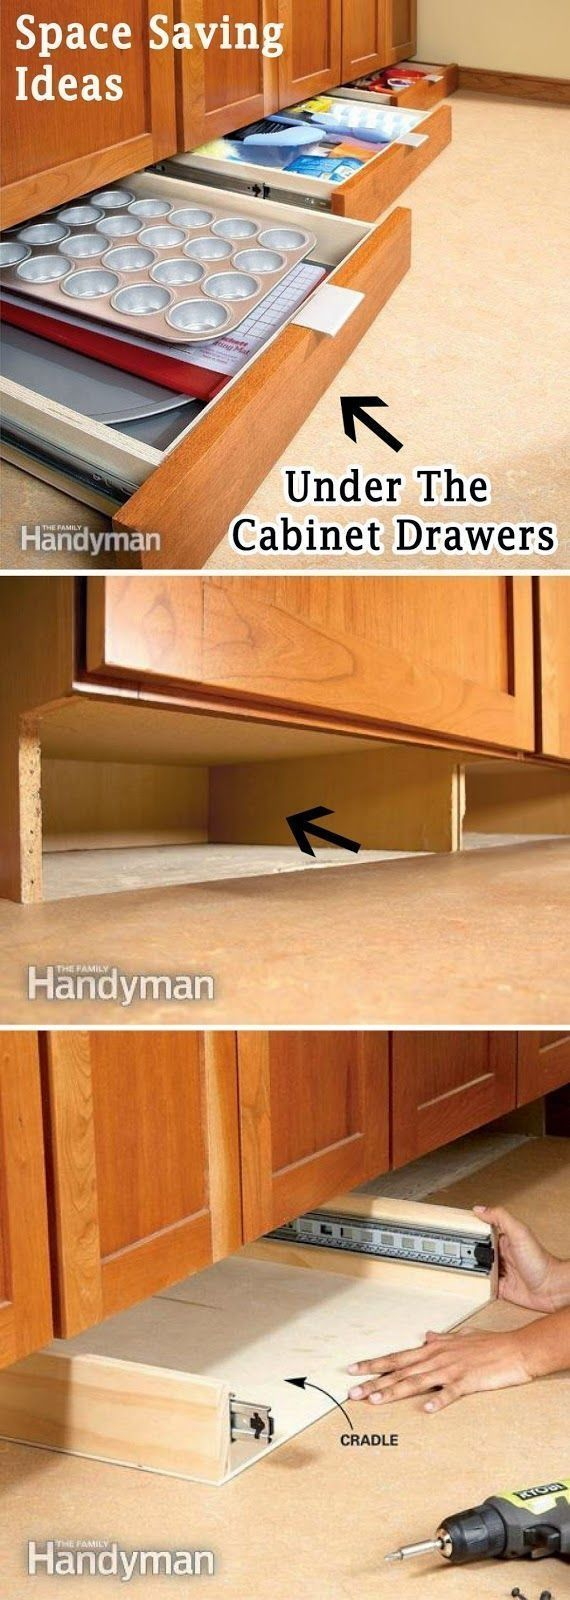 best kitchen organization images on pinterest organization